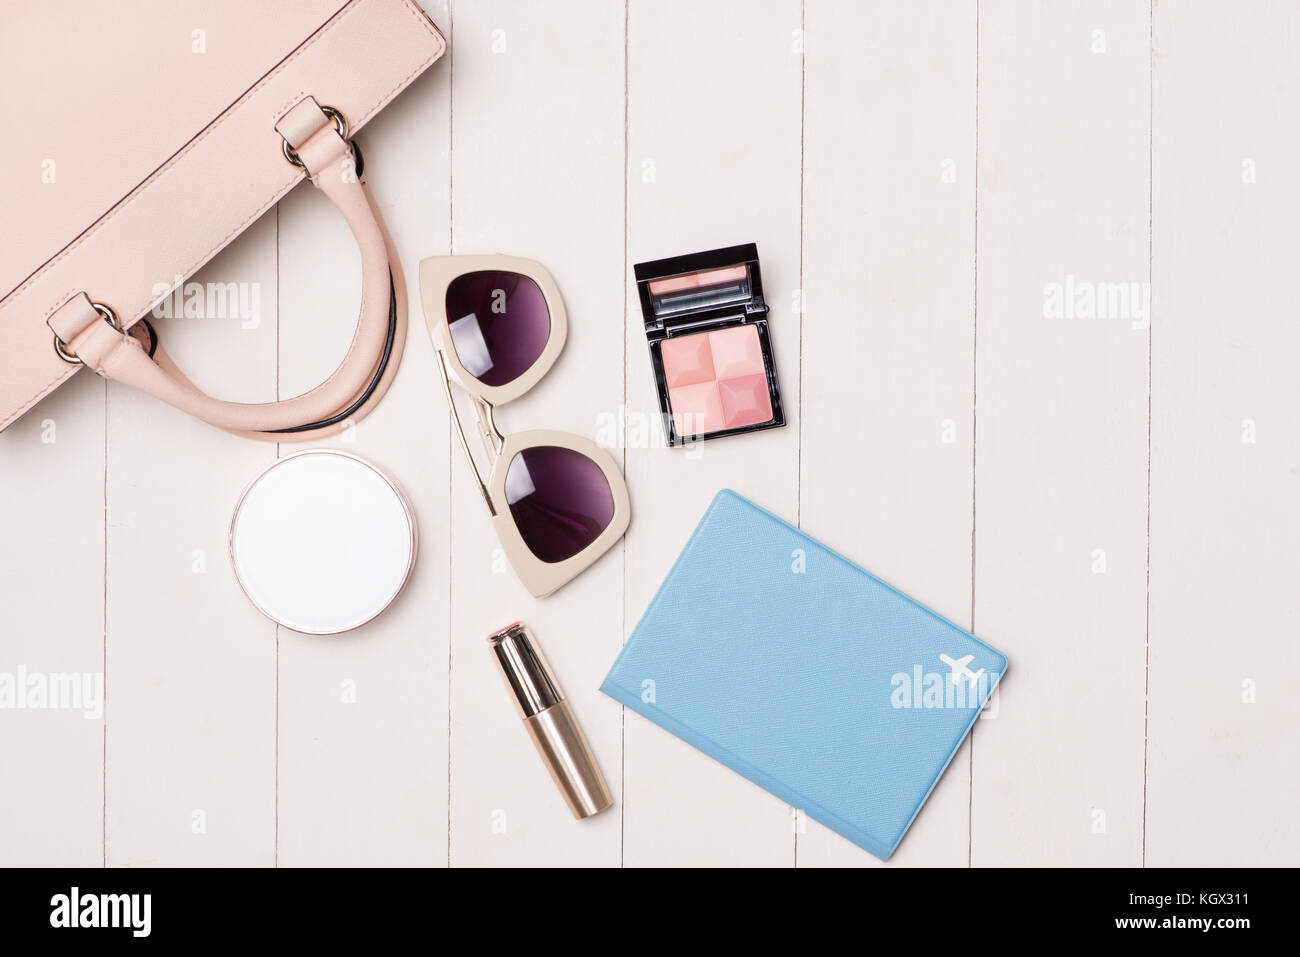 0dff3dd0245 Women cosmetics and fashion items on table with camera and passport ...